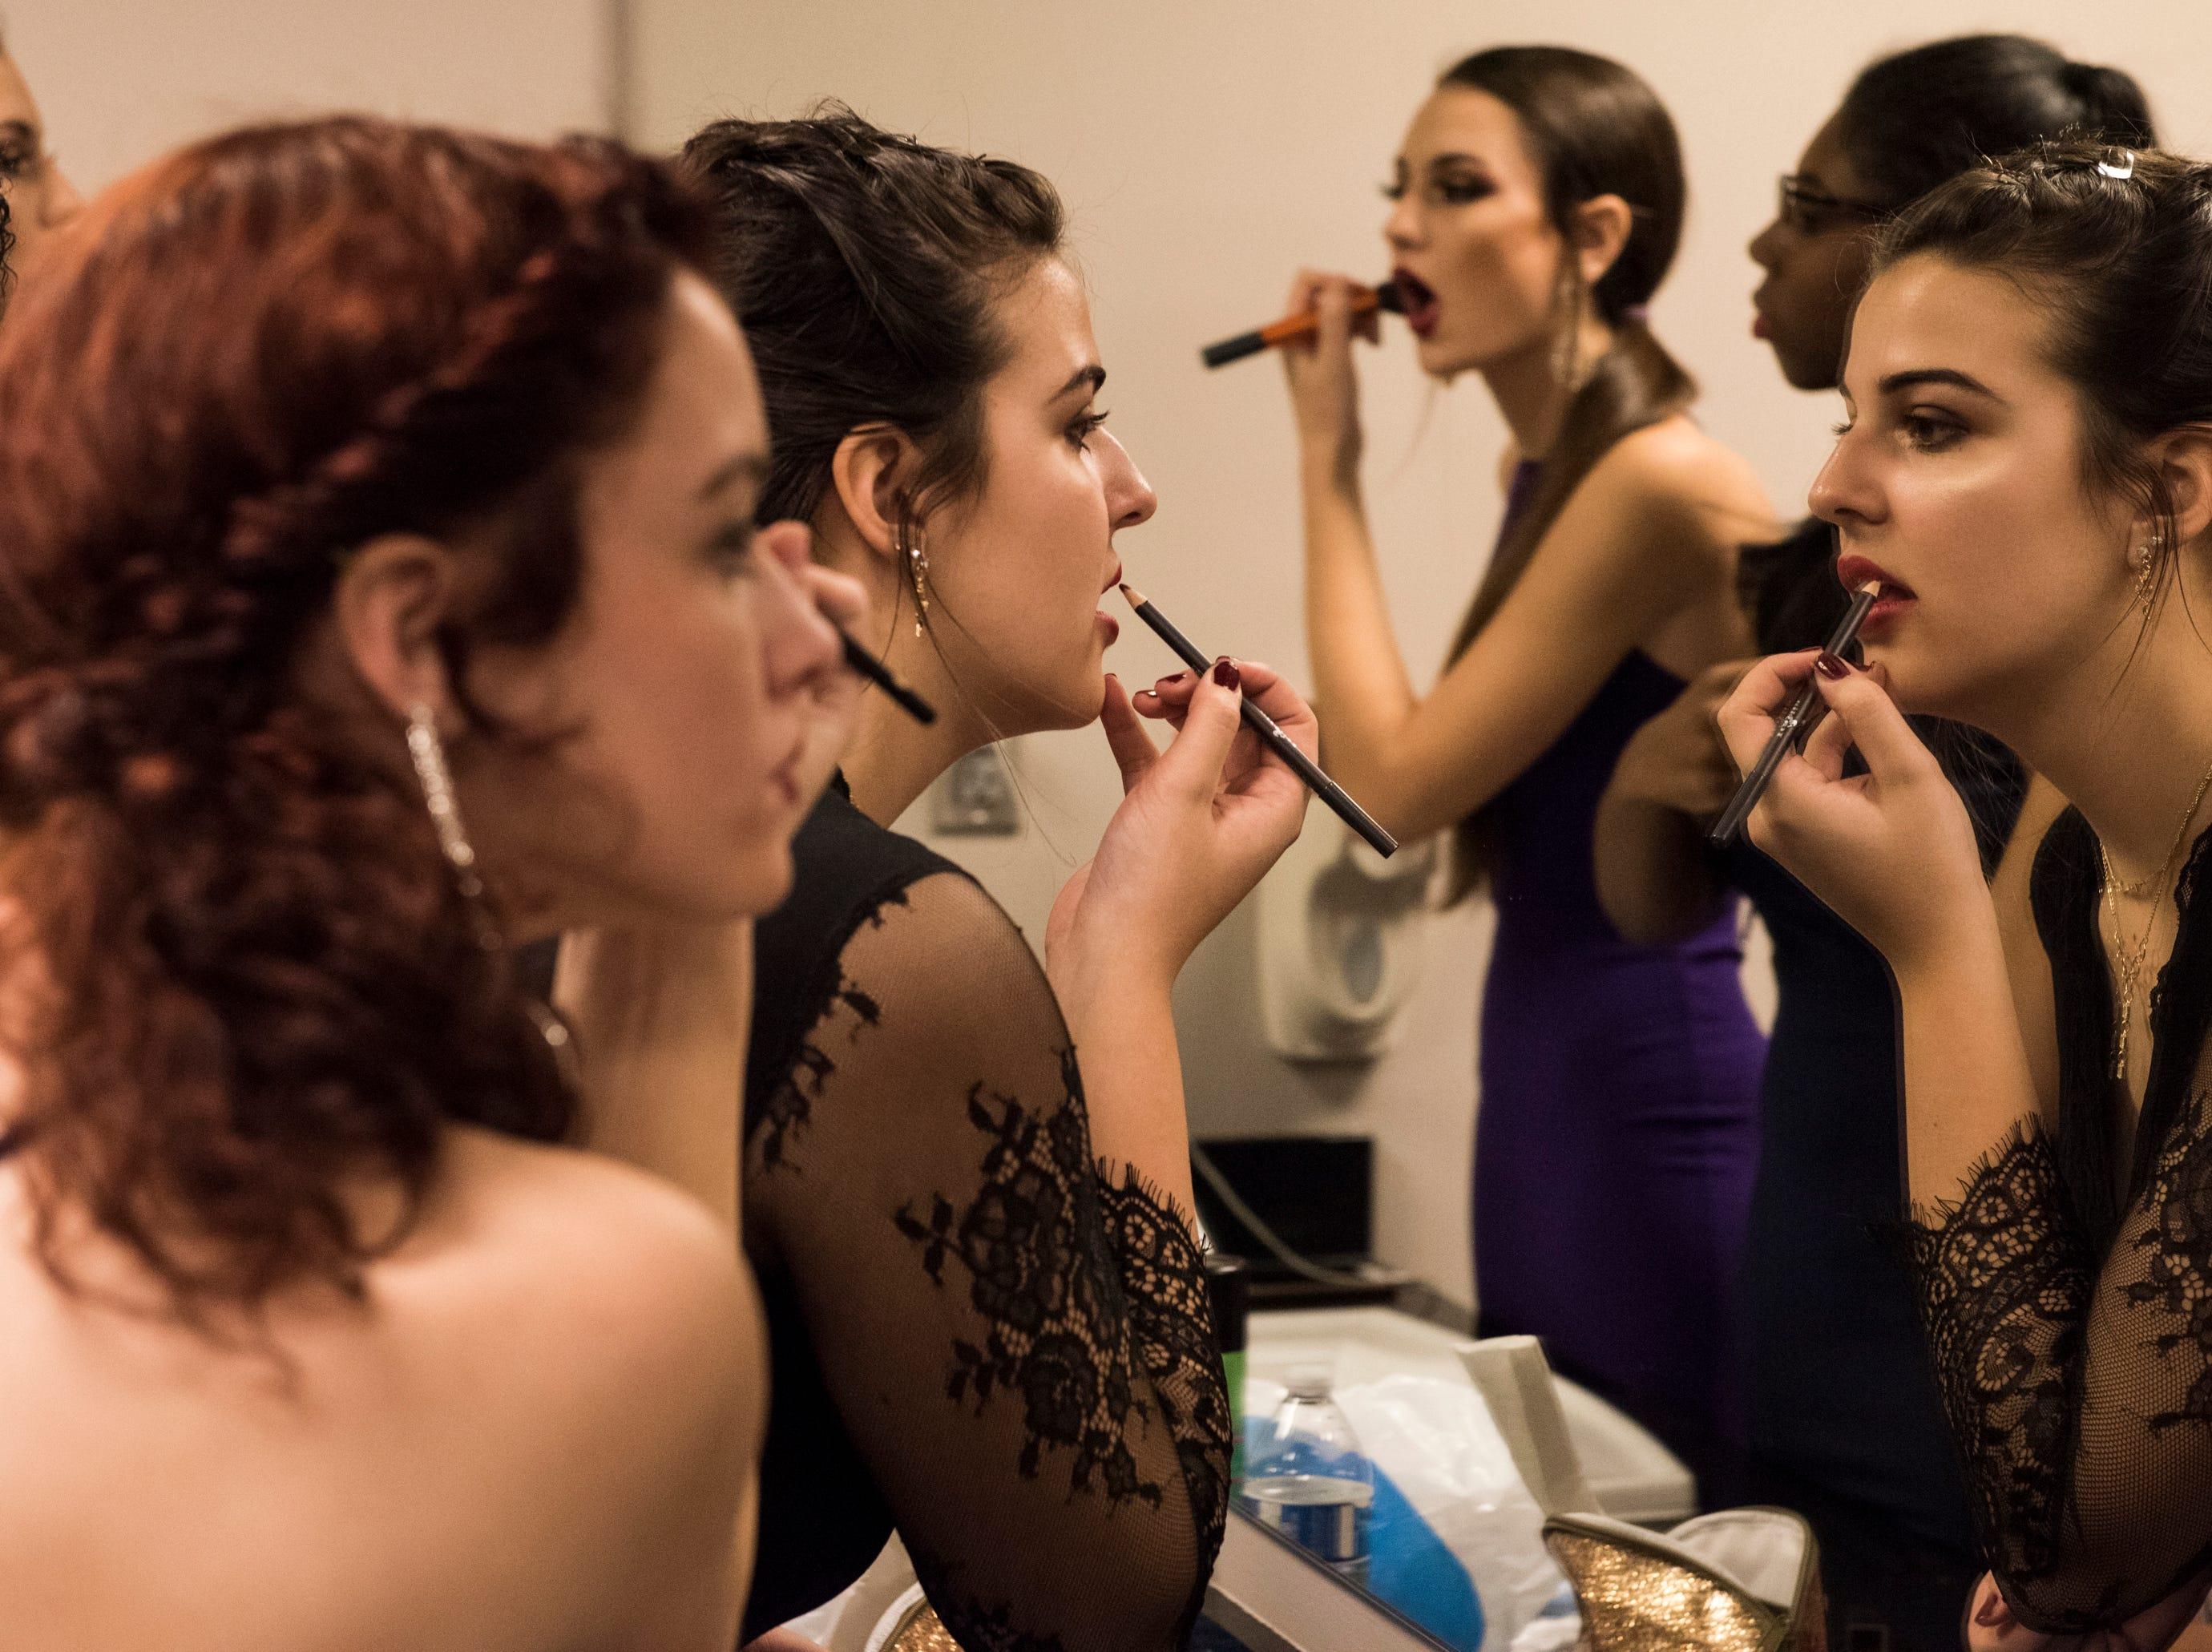 Students get ready before the BTW Showcase: Rise at the Montgomery Performing Arts Center in Montgomery, Ala., on Friday, Jan. 11, 2019.